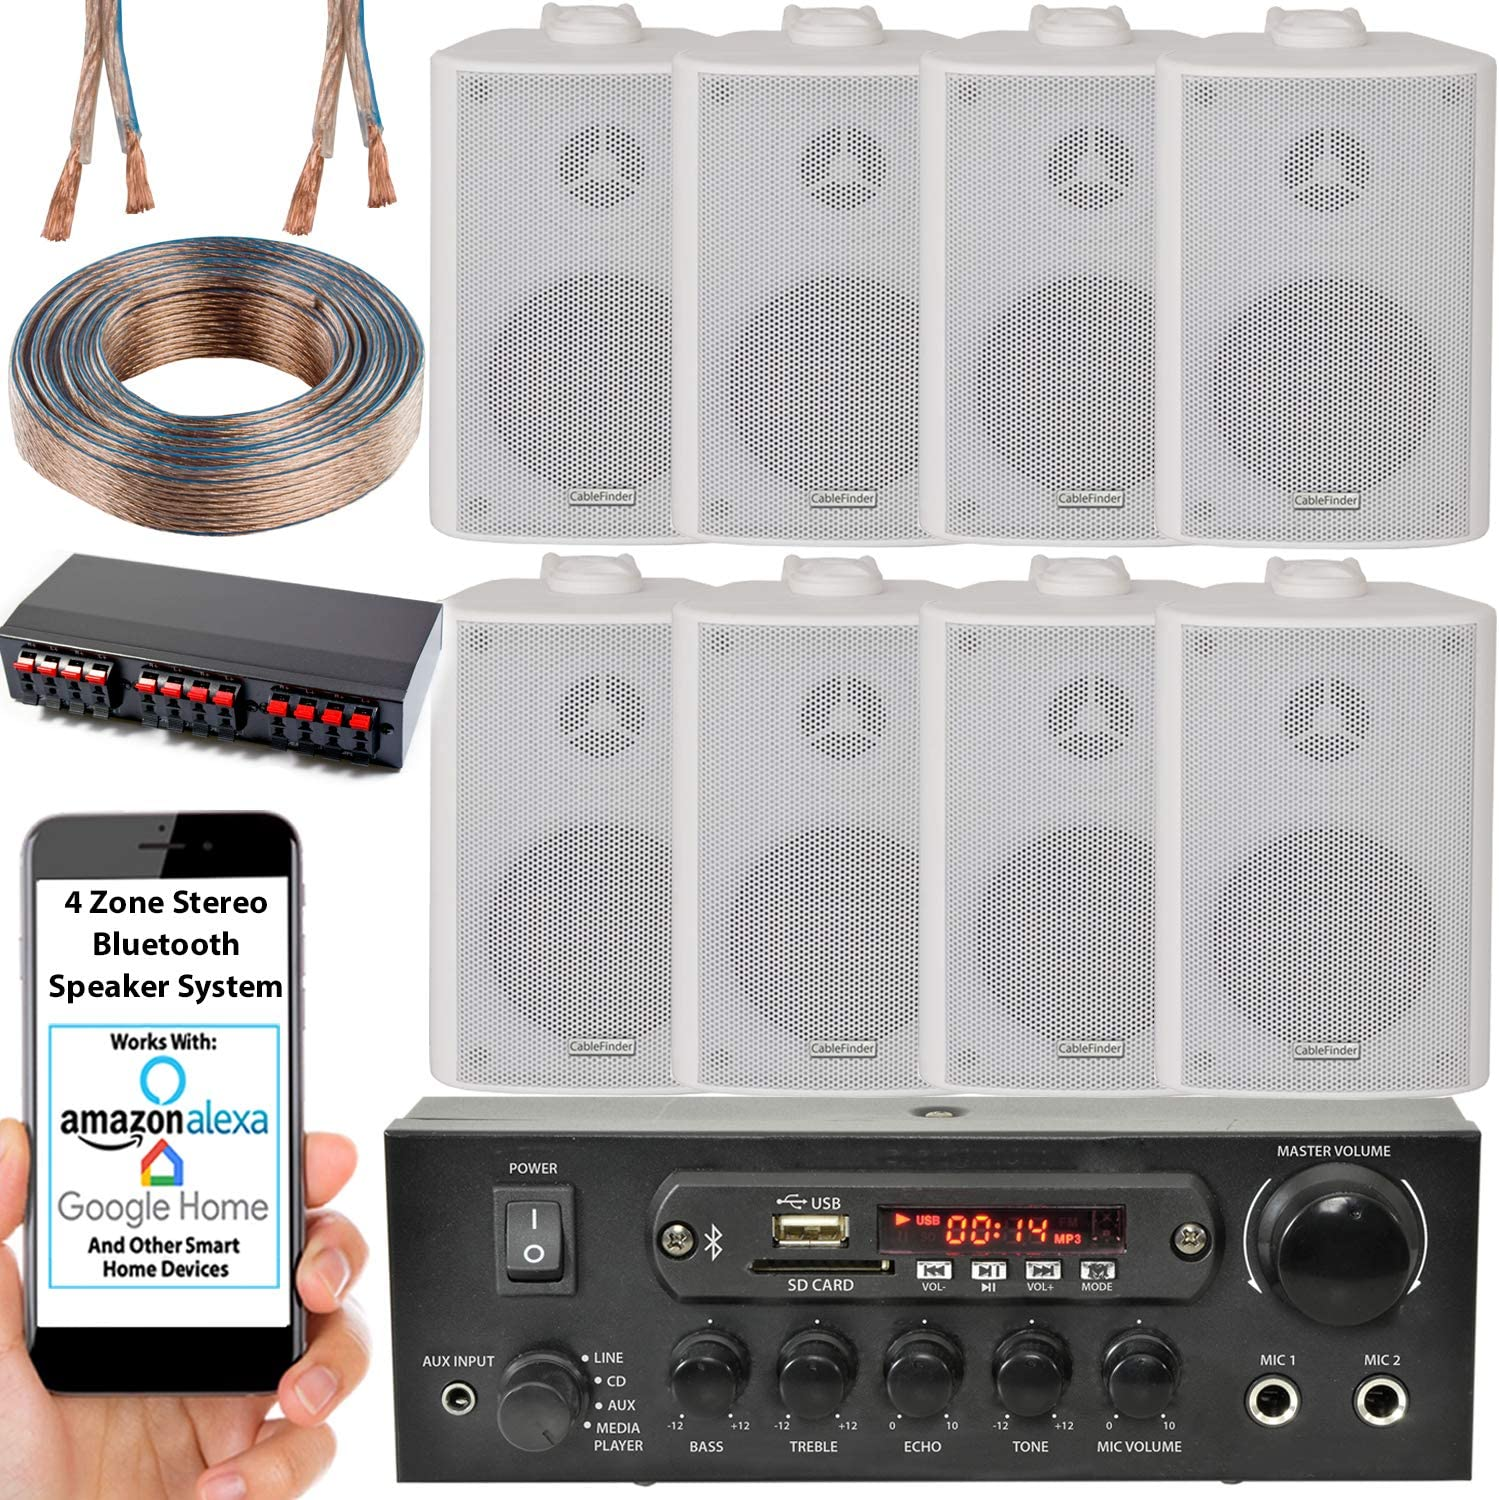 4 Zone Bluetooth Speaker Background Music Kit Stereo Amplifier 8x White Wall Mounted Hifi Speakers Stereo Wireless Background Sound System Cafe Restaurant Pub Shop Home Multi Room Audio